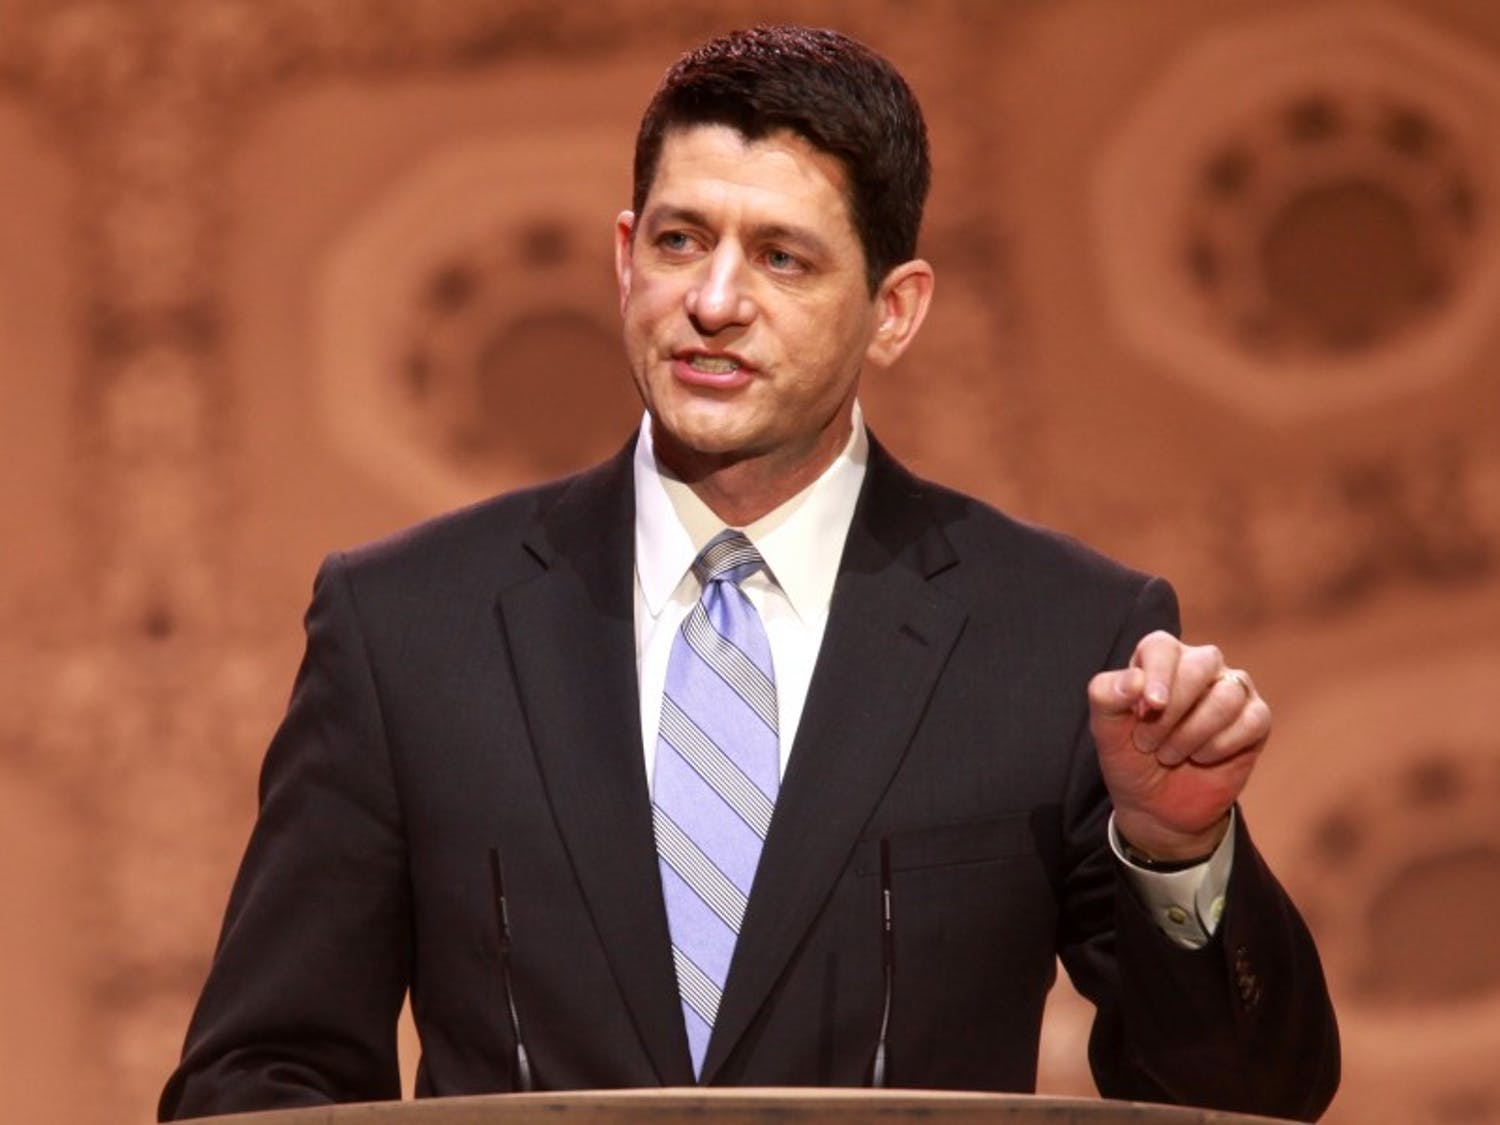 Speaker of the House Paul Ryan said Tuesday he is not interested in being the Republican Party's presidential nominee for the 2016 election.